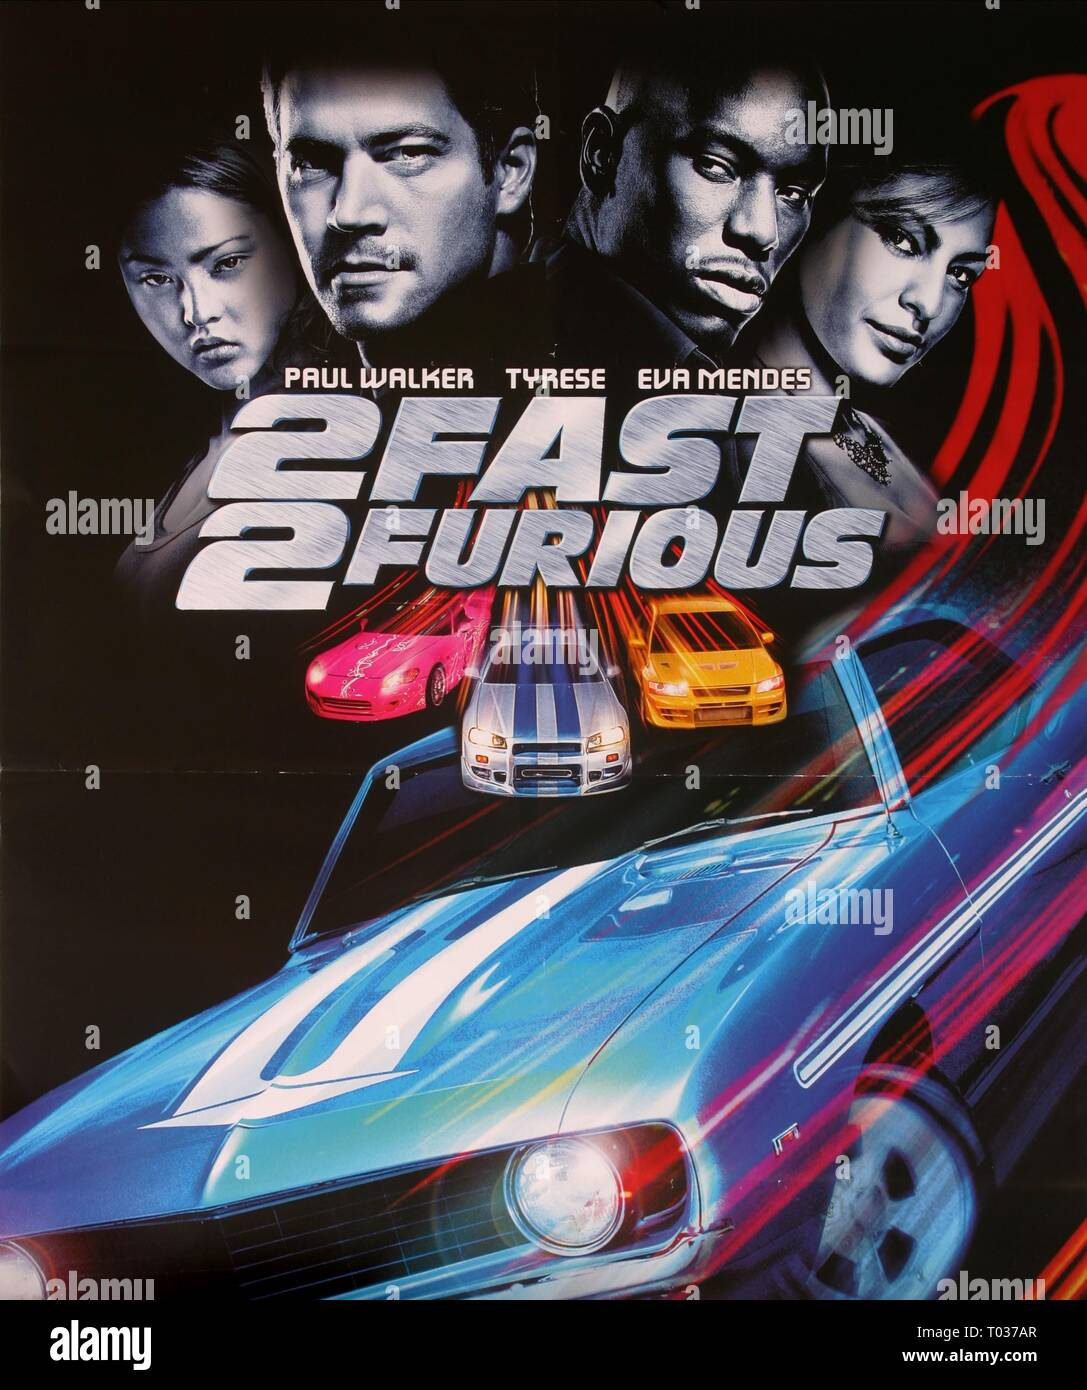 PAUL WALKER, TYRESE GIBSON, EVA MENDES, CHRIS LUDACRIS BRIDGES, DEVON AOKI POSTER, 2 FAST 2 FURIOUS, 2003 - Stock Image